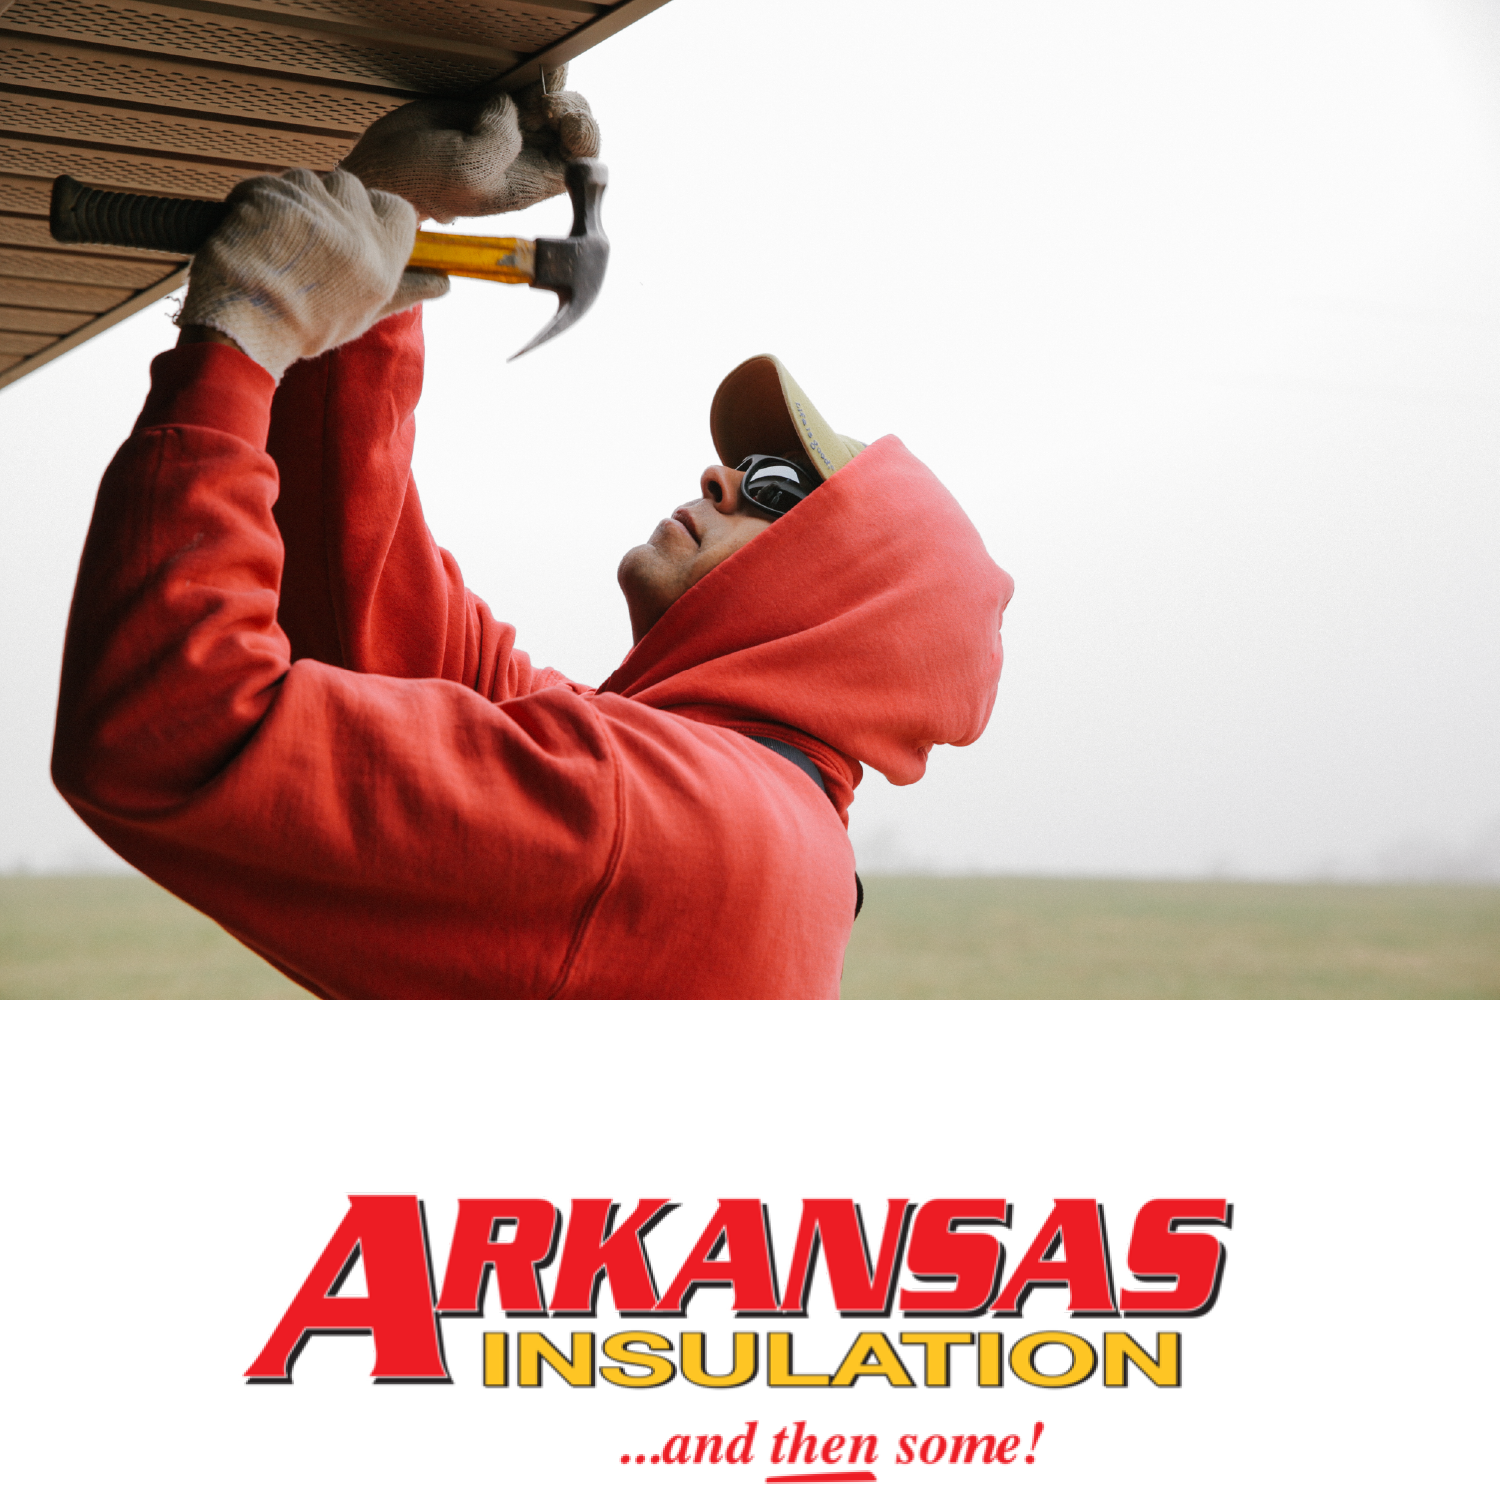 Founded in 1978, Arkansas Insulation services Northwest Arkansas and Southwest Oklahoma. LEARN MORE >>